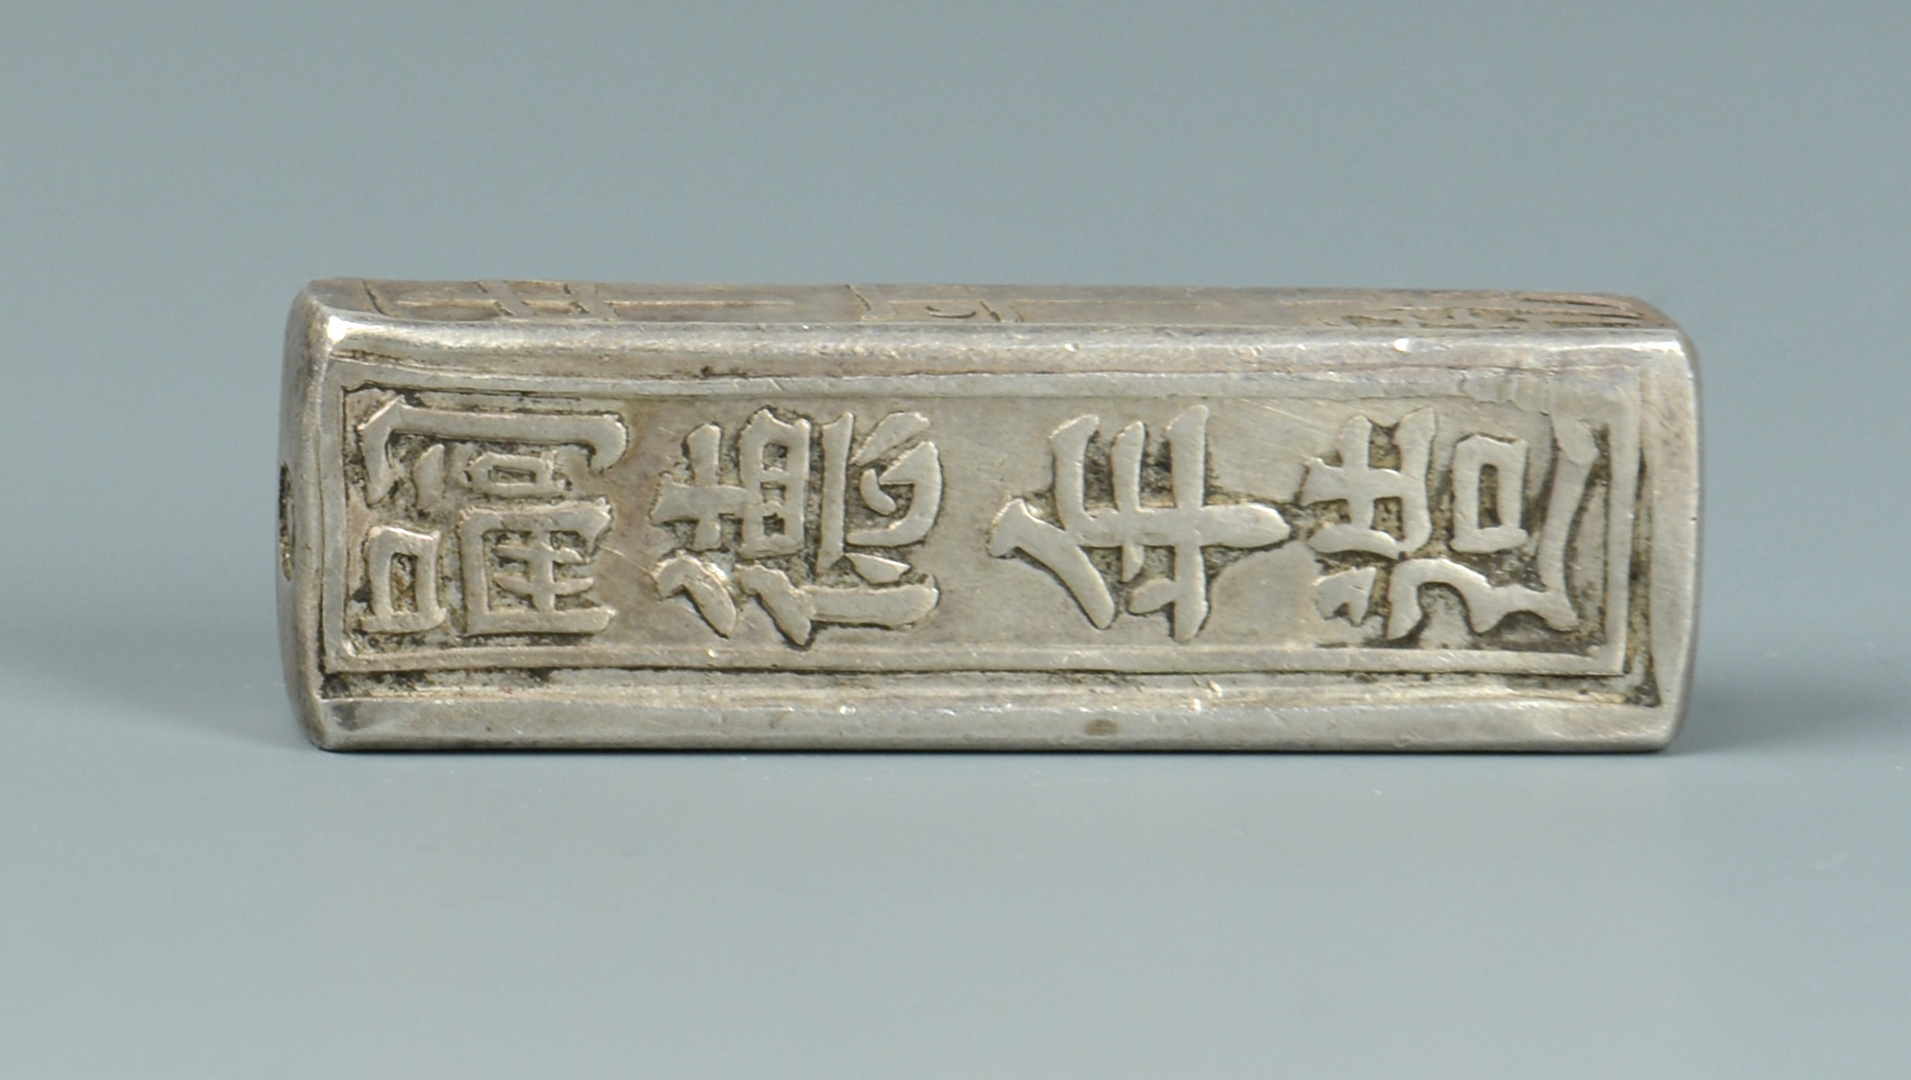 Lot 3088098: 2 Asian Silver Ignots